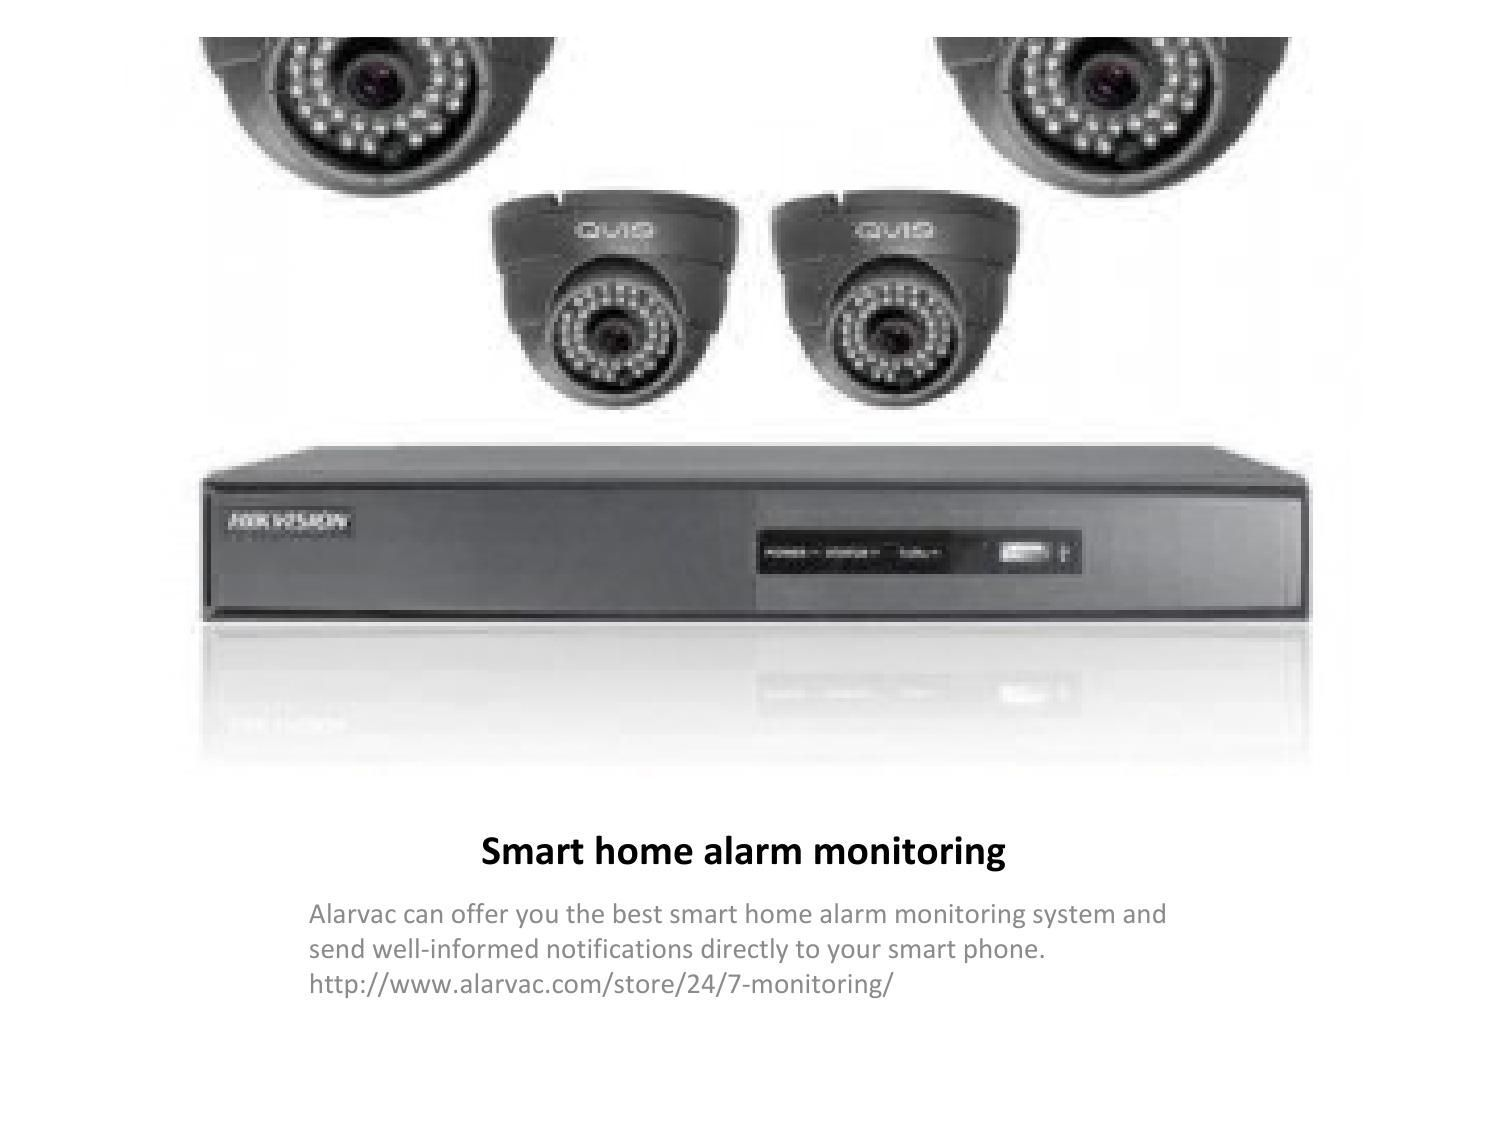 Pin by Home Security u Alarms on cctv Pinterest Home security